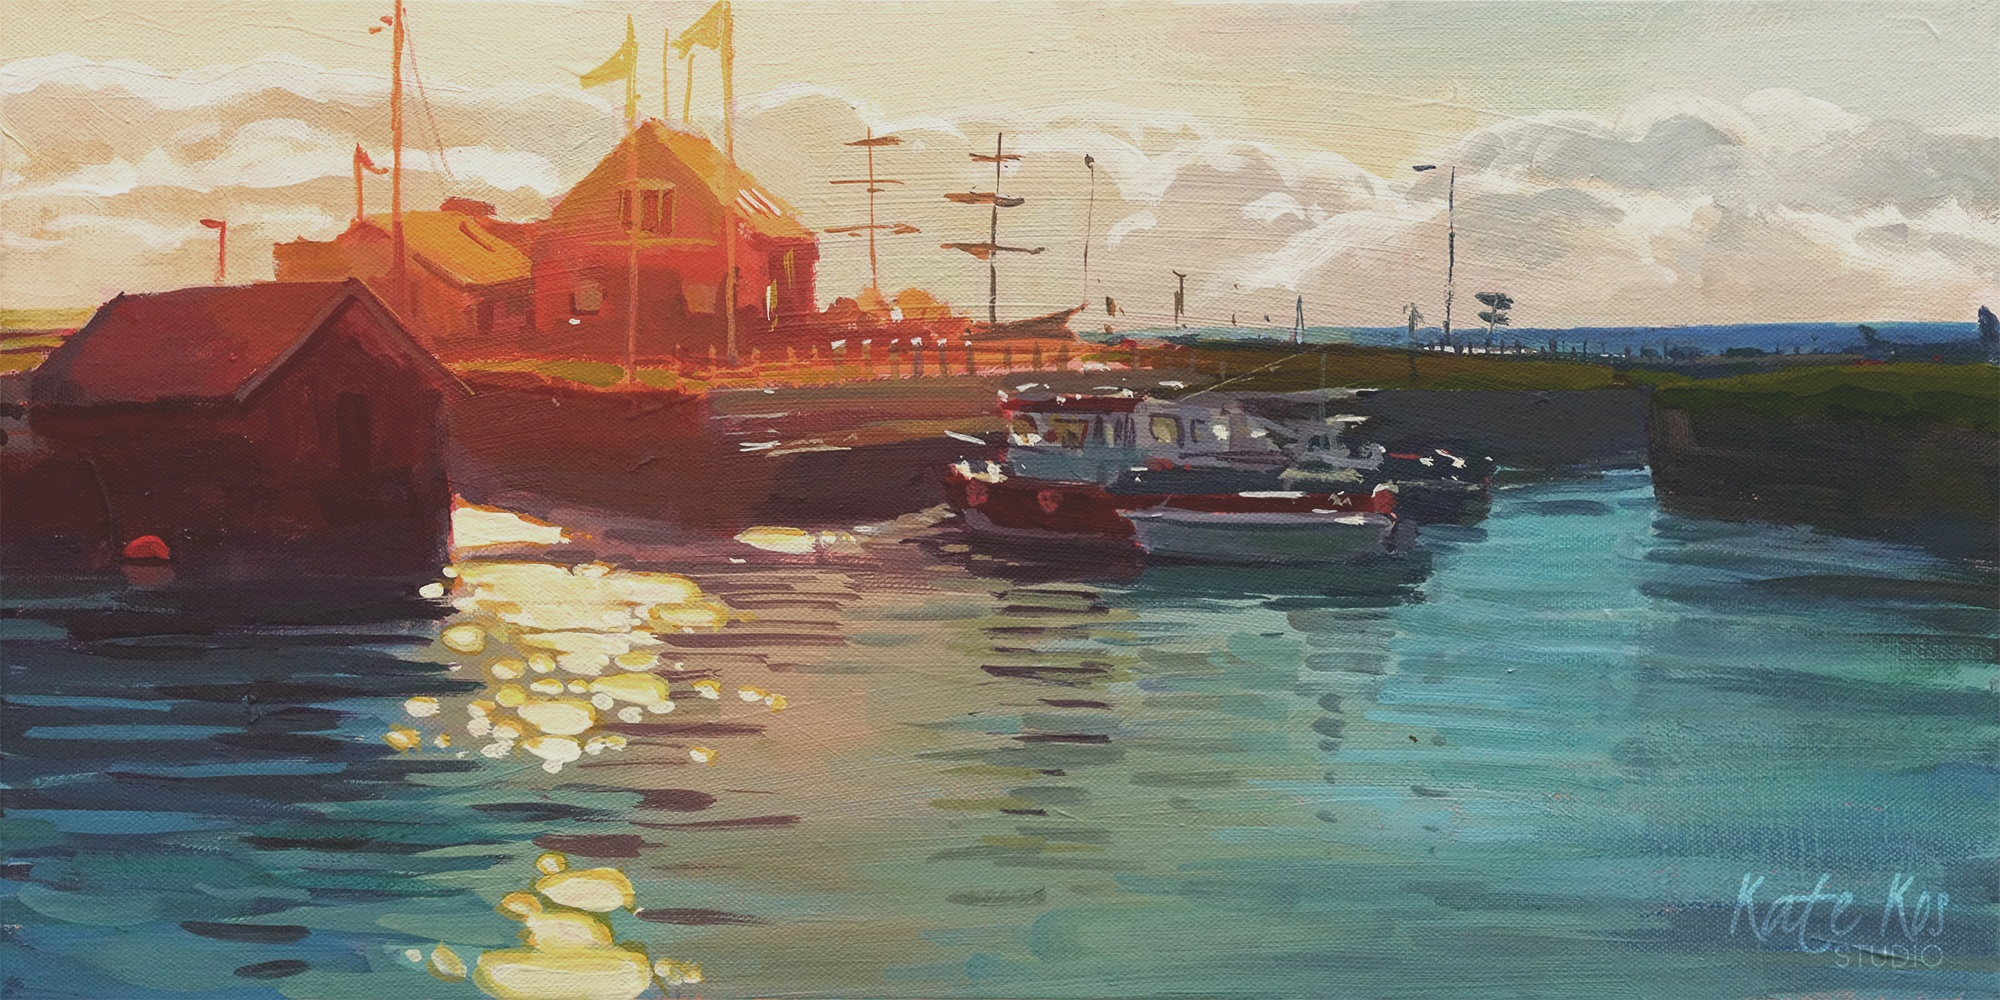 2019 art painting acrylic seascape harbour by Kate Kos - Courtown Harbour